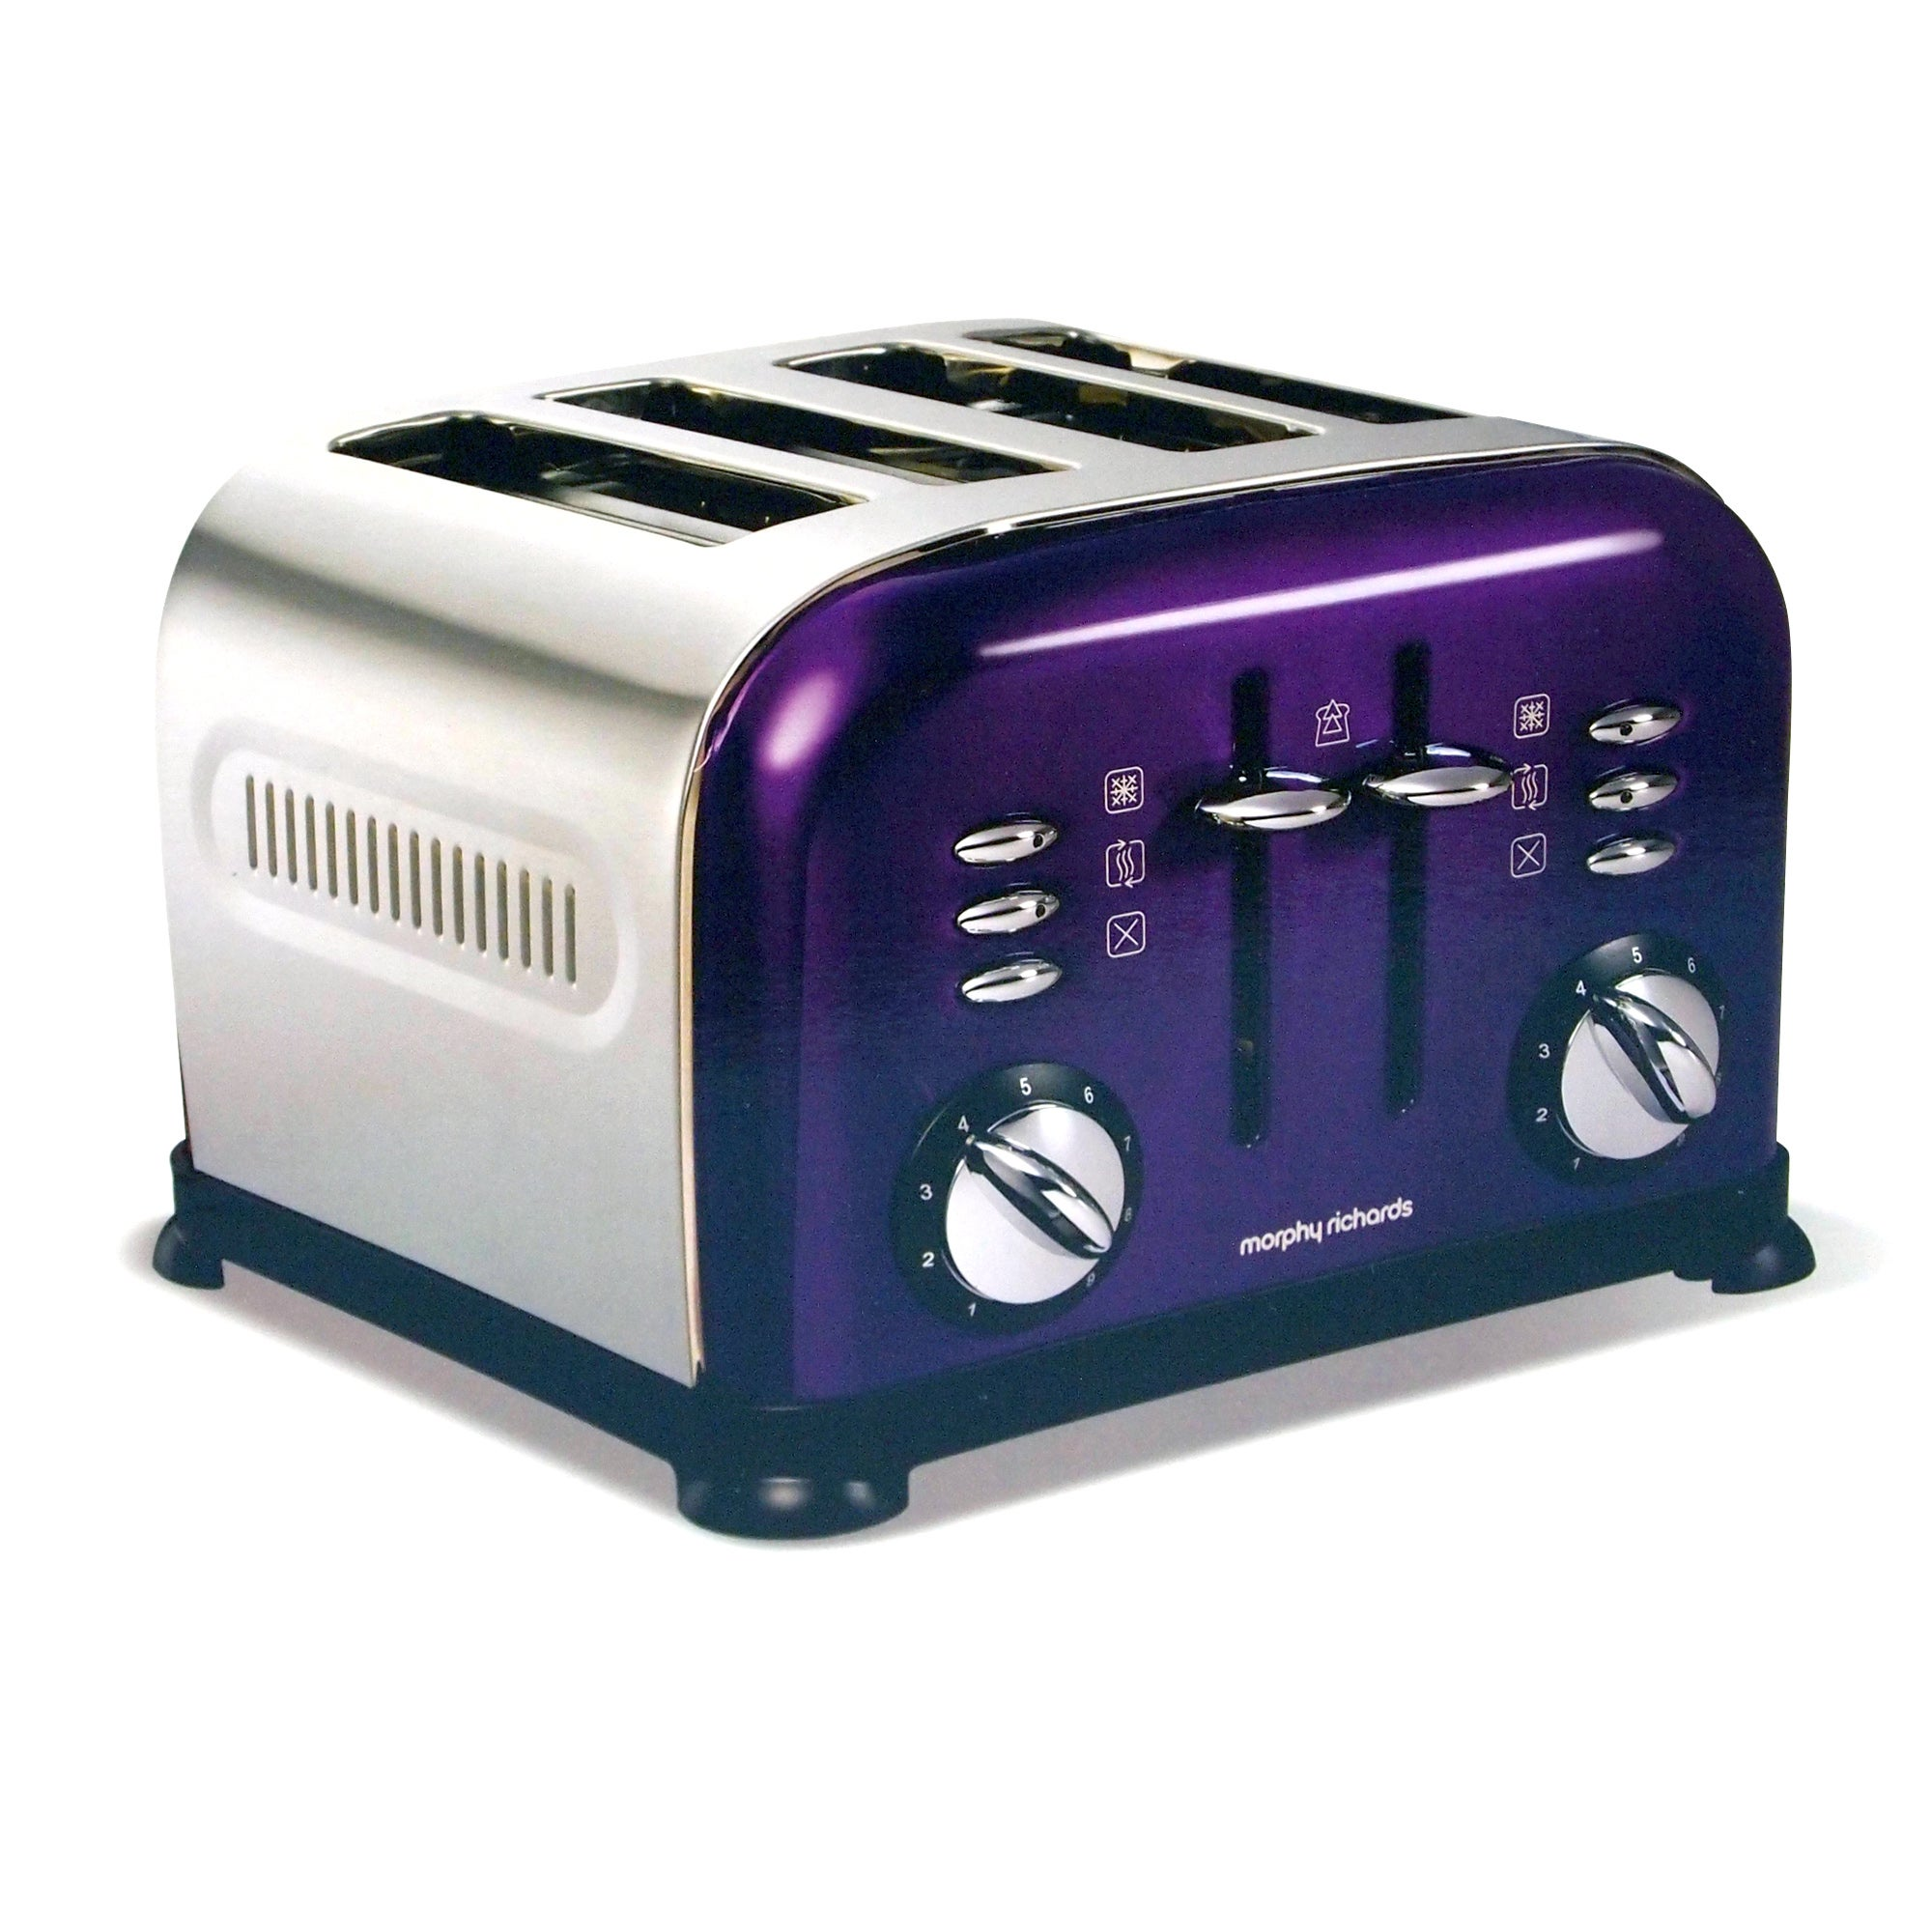 Morphy Richards Accents Purple 4 Slice Toaster